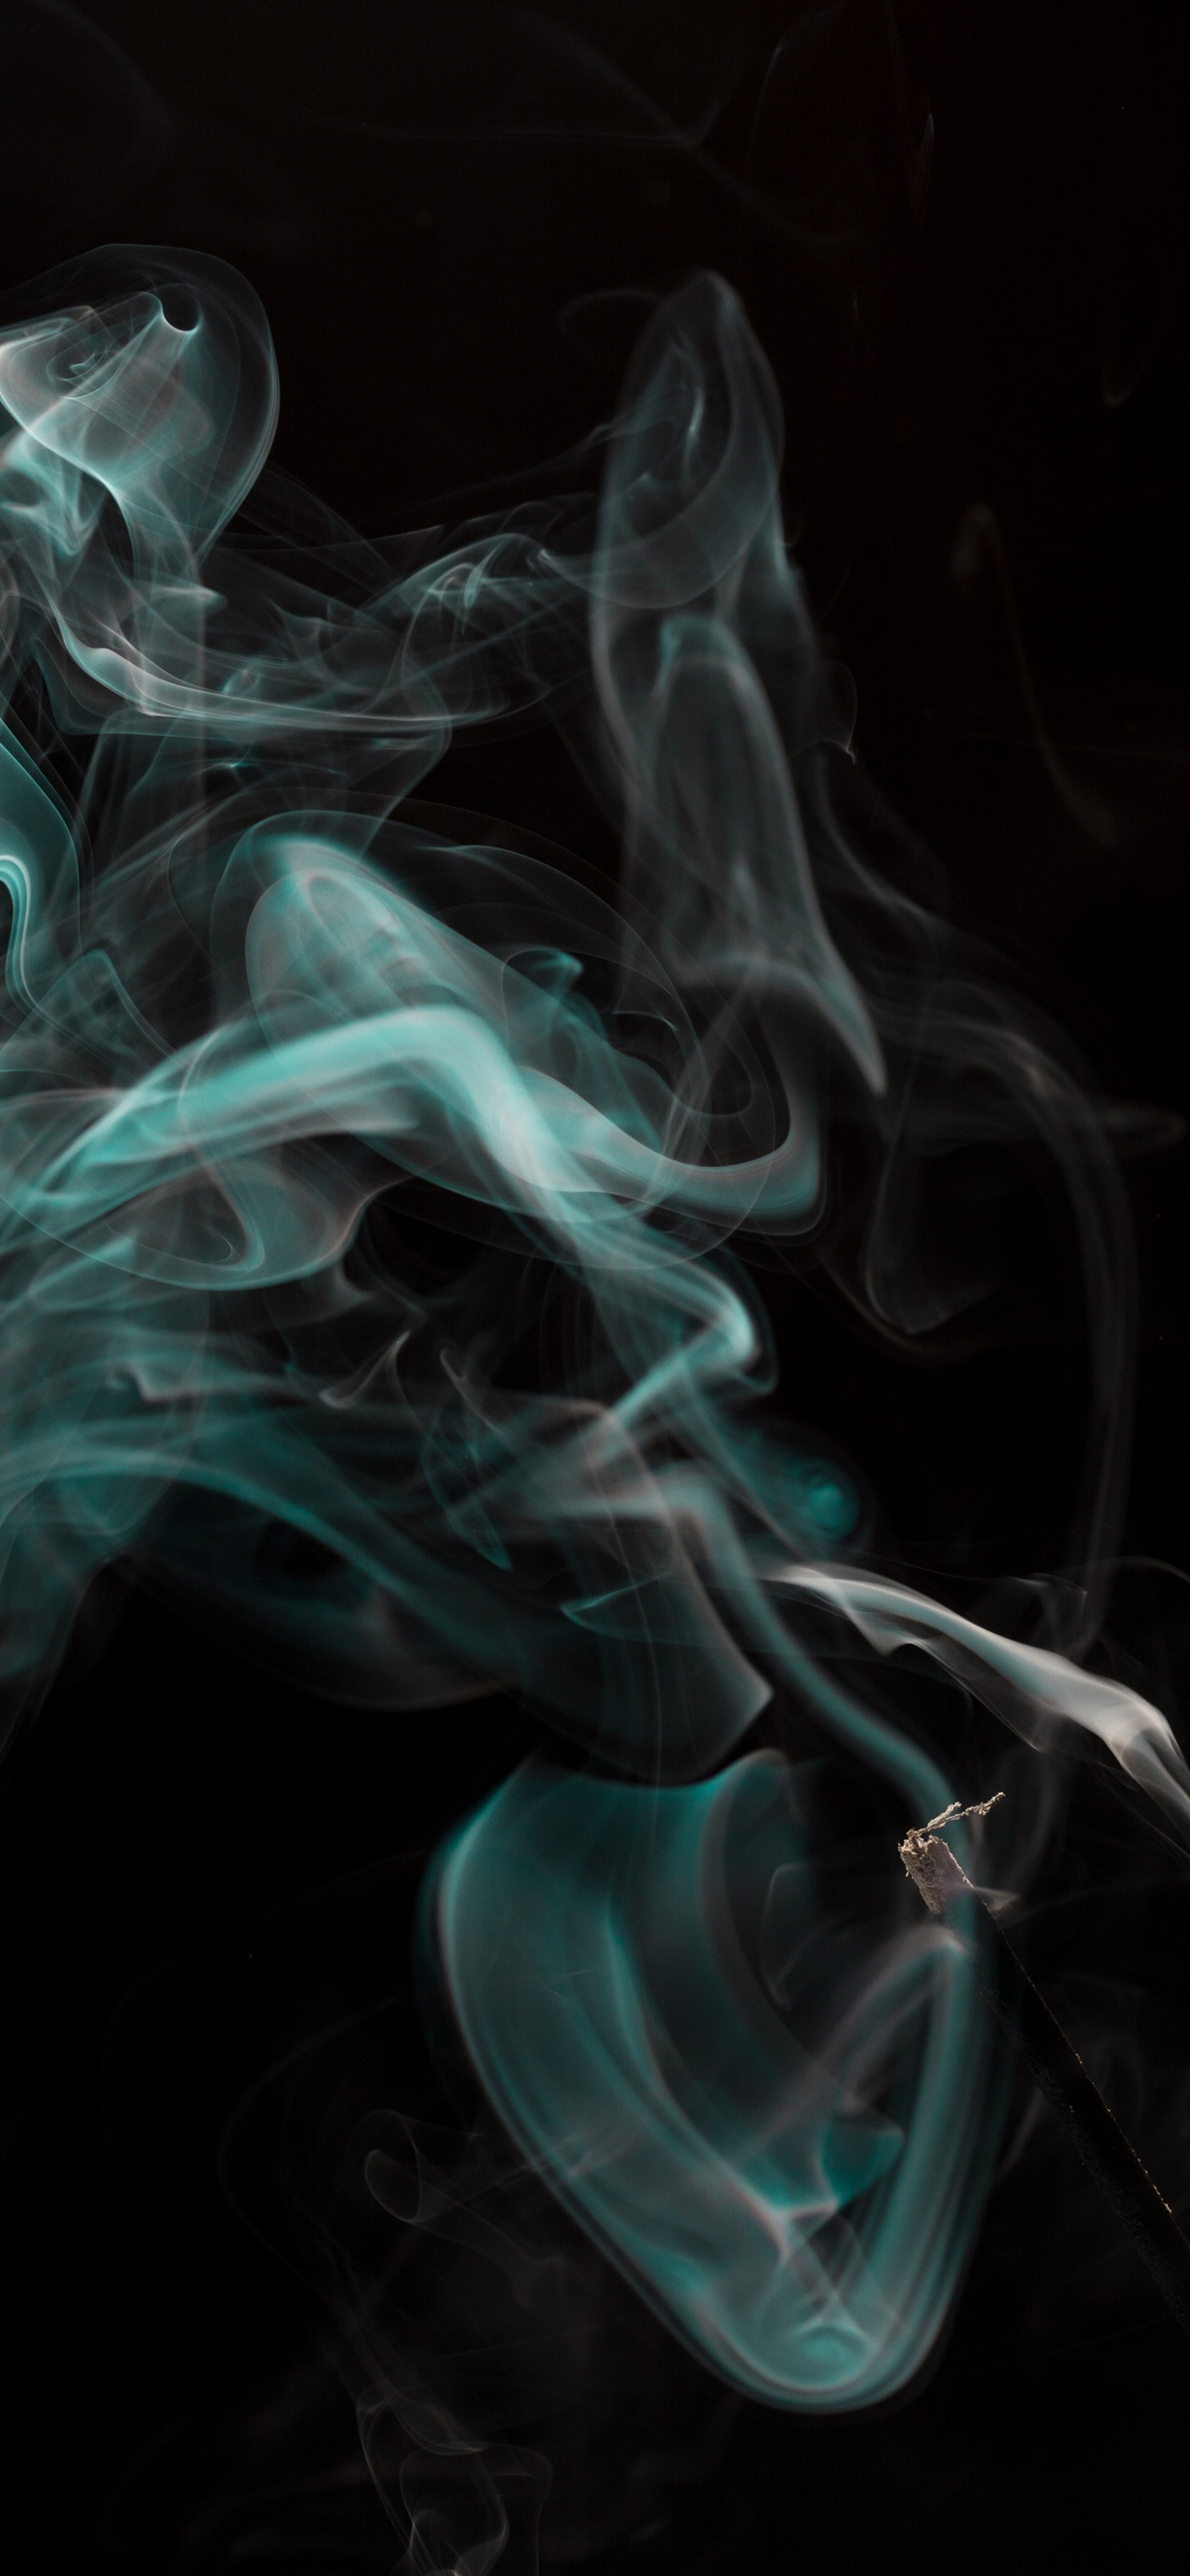 Abstract Smoke Black Background Iphone Xs Max X 8 7 6 5 4